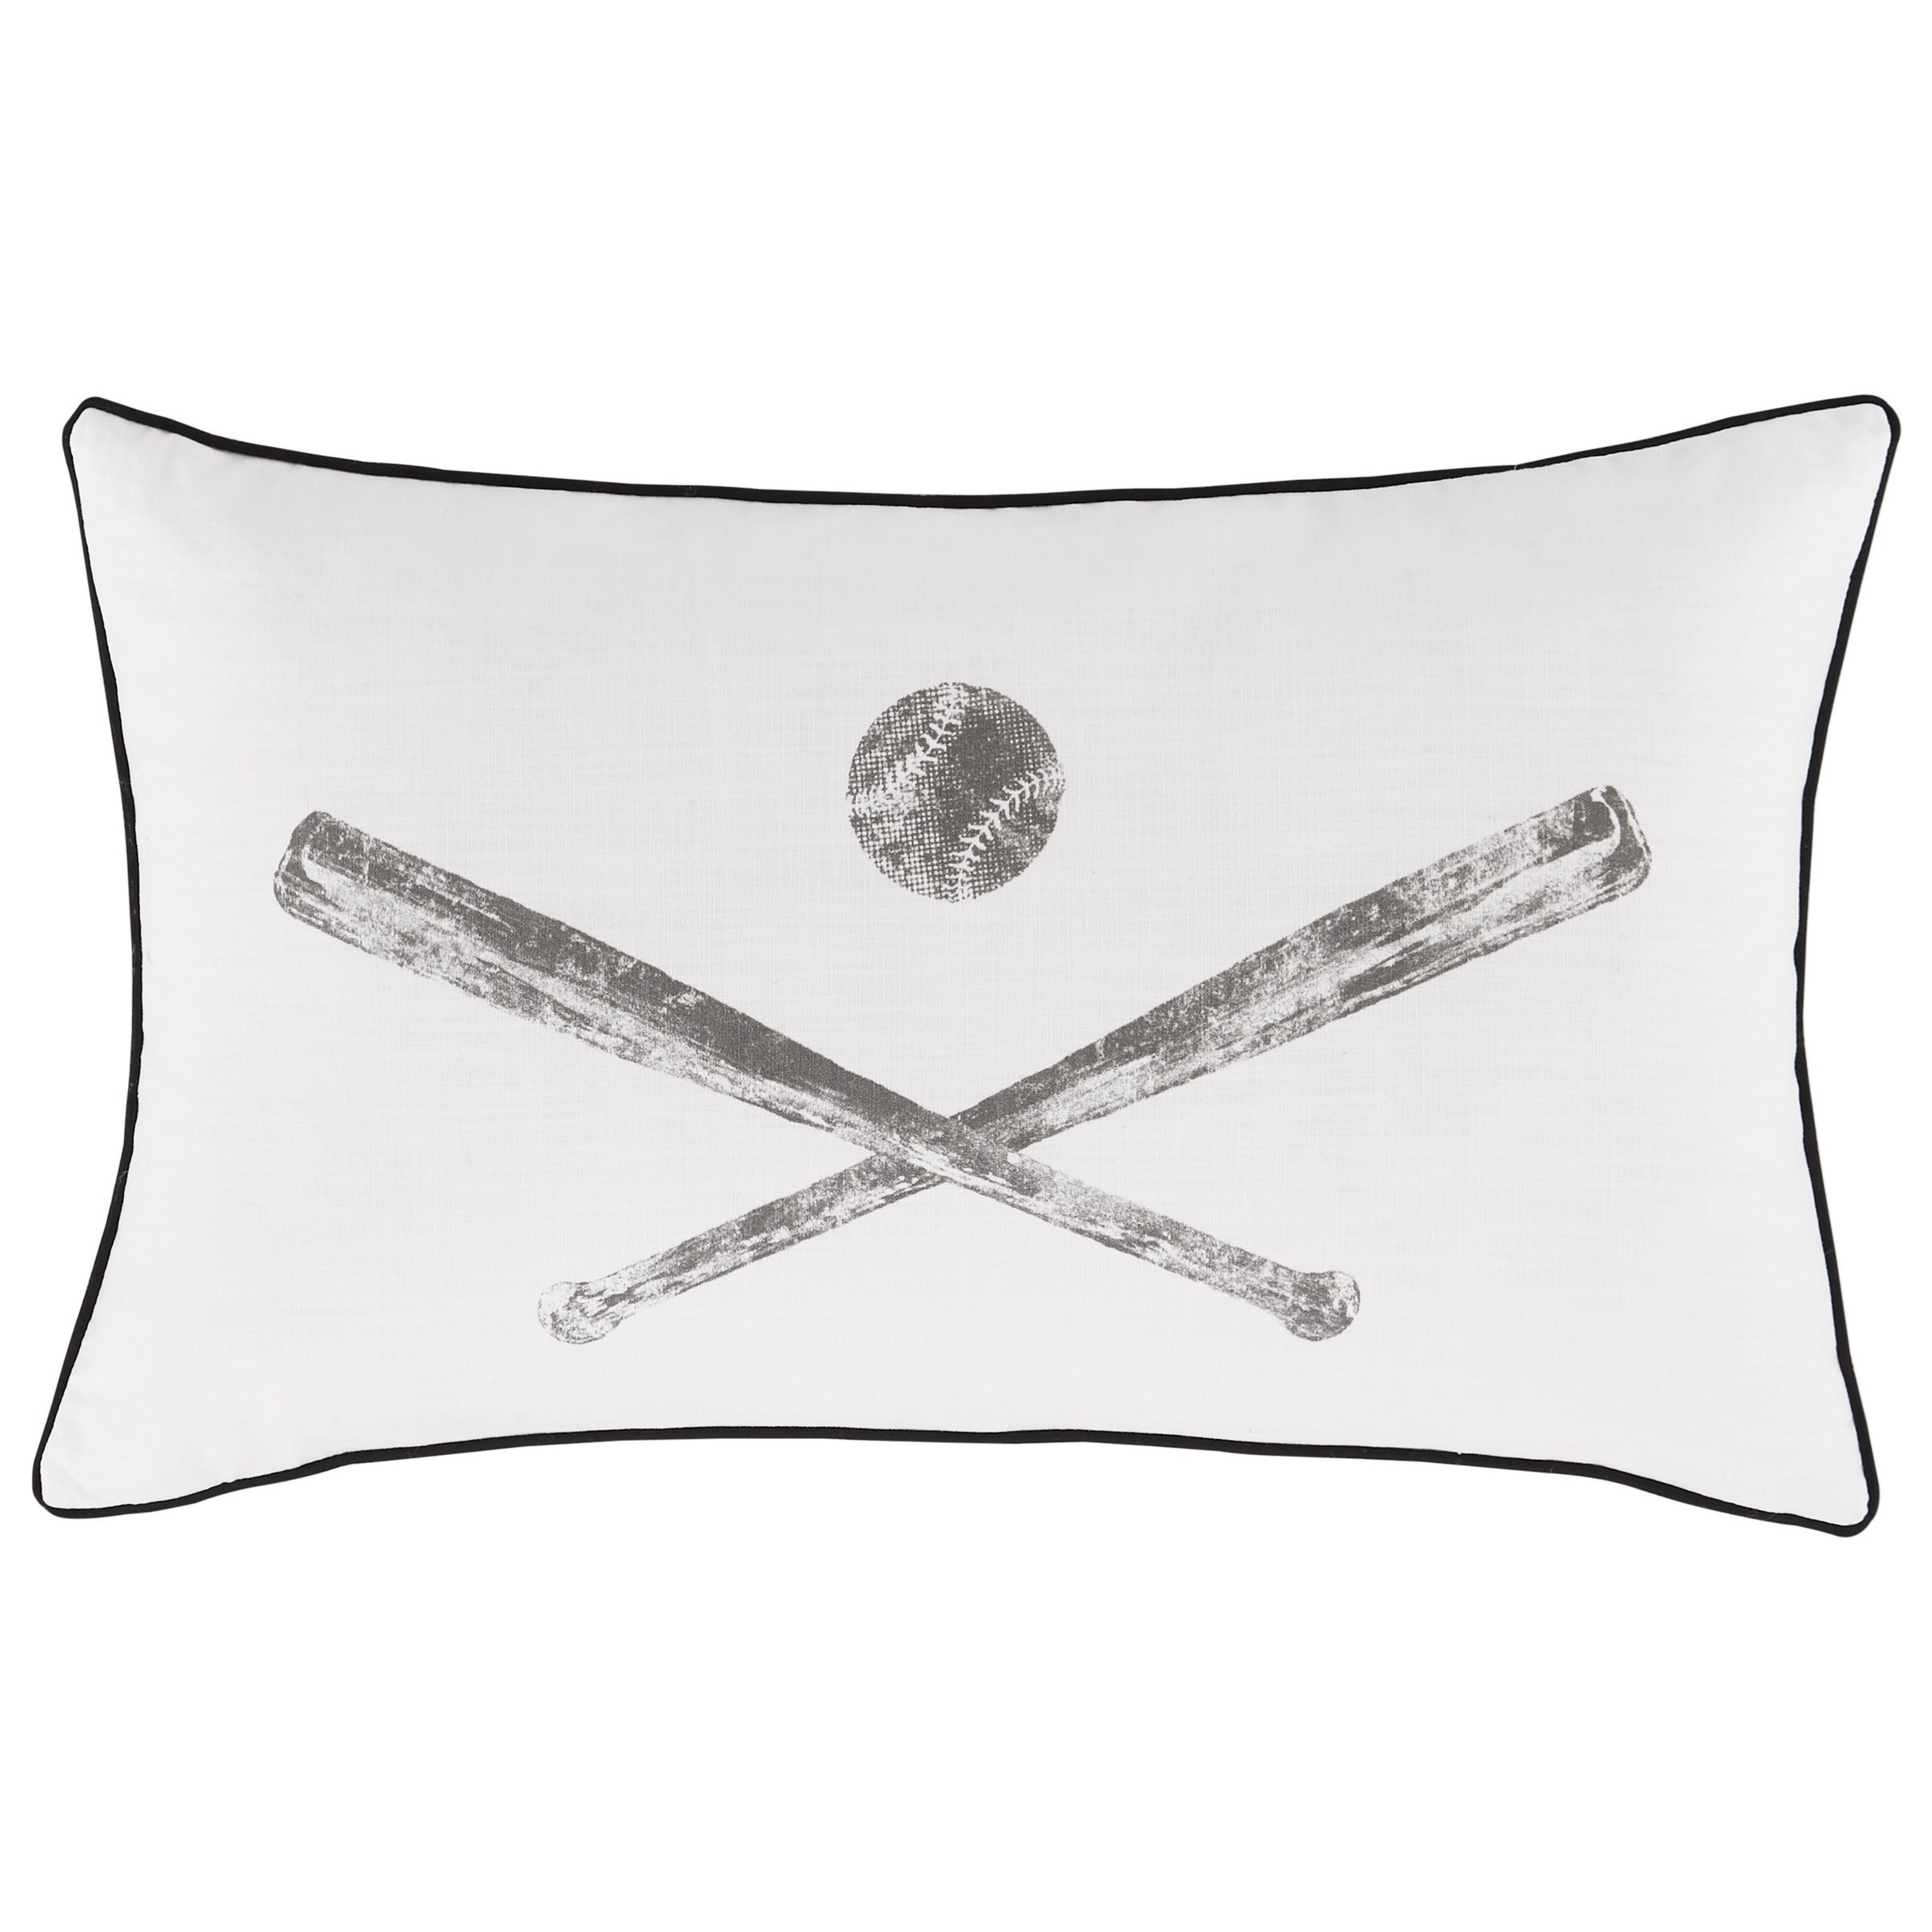 Pillows Waman Charcoal Pillow by Signature Design by Ashley at Northeast Factory Direct